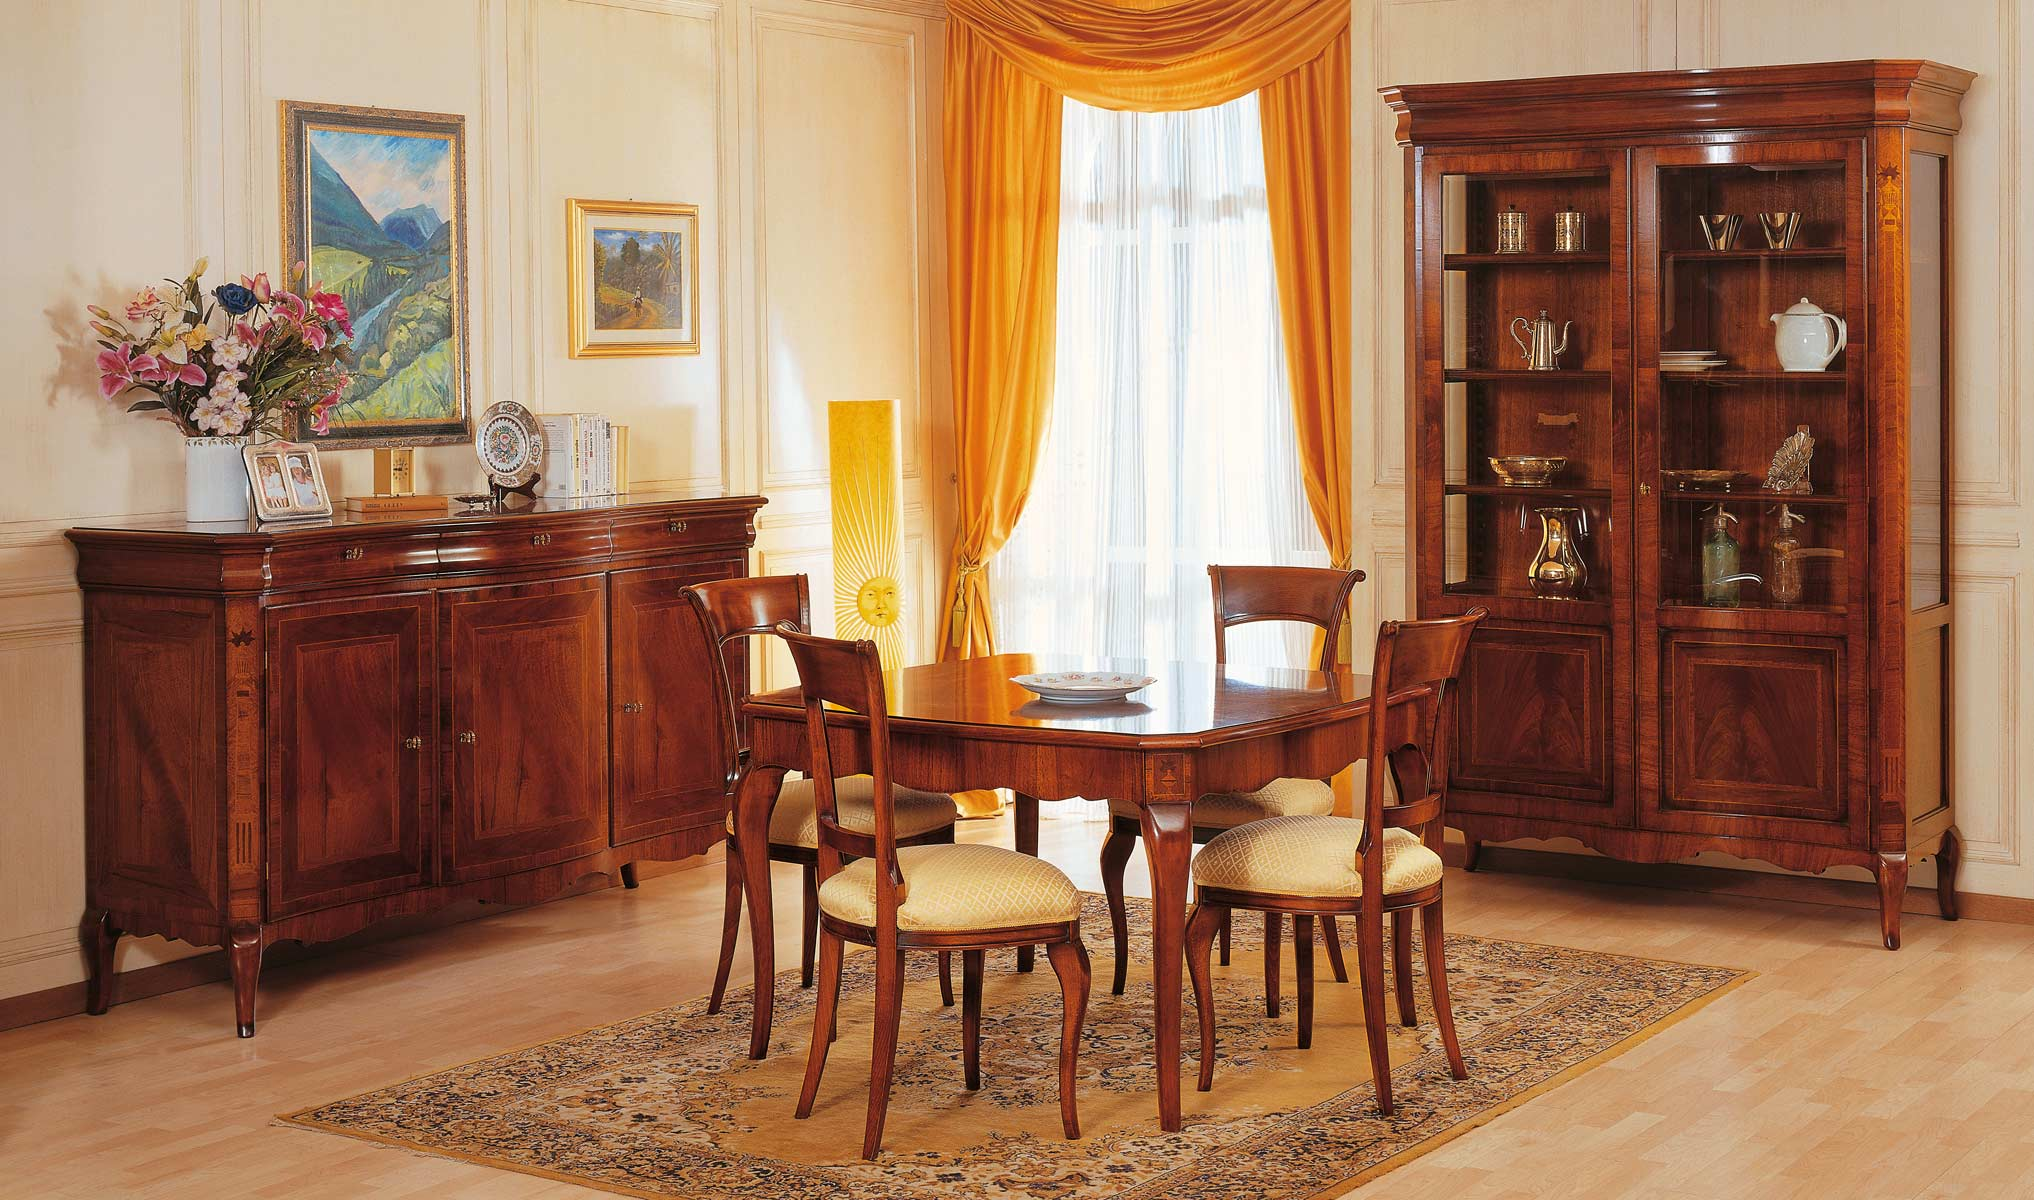 dining room in 19th century french style vimercati classic furniture. Black Bedroom Furniture Sets. Home Design Ideas